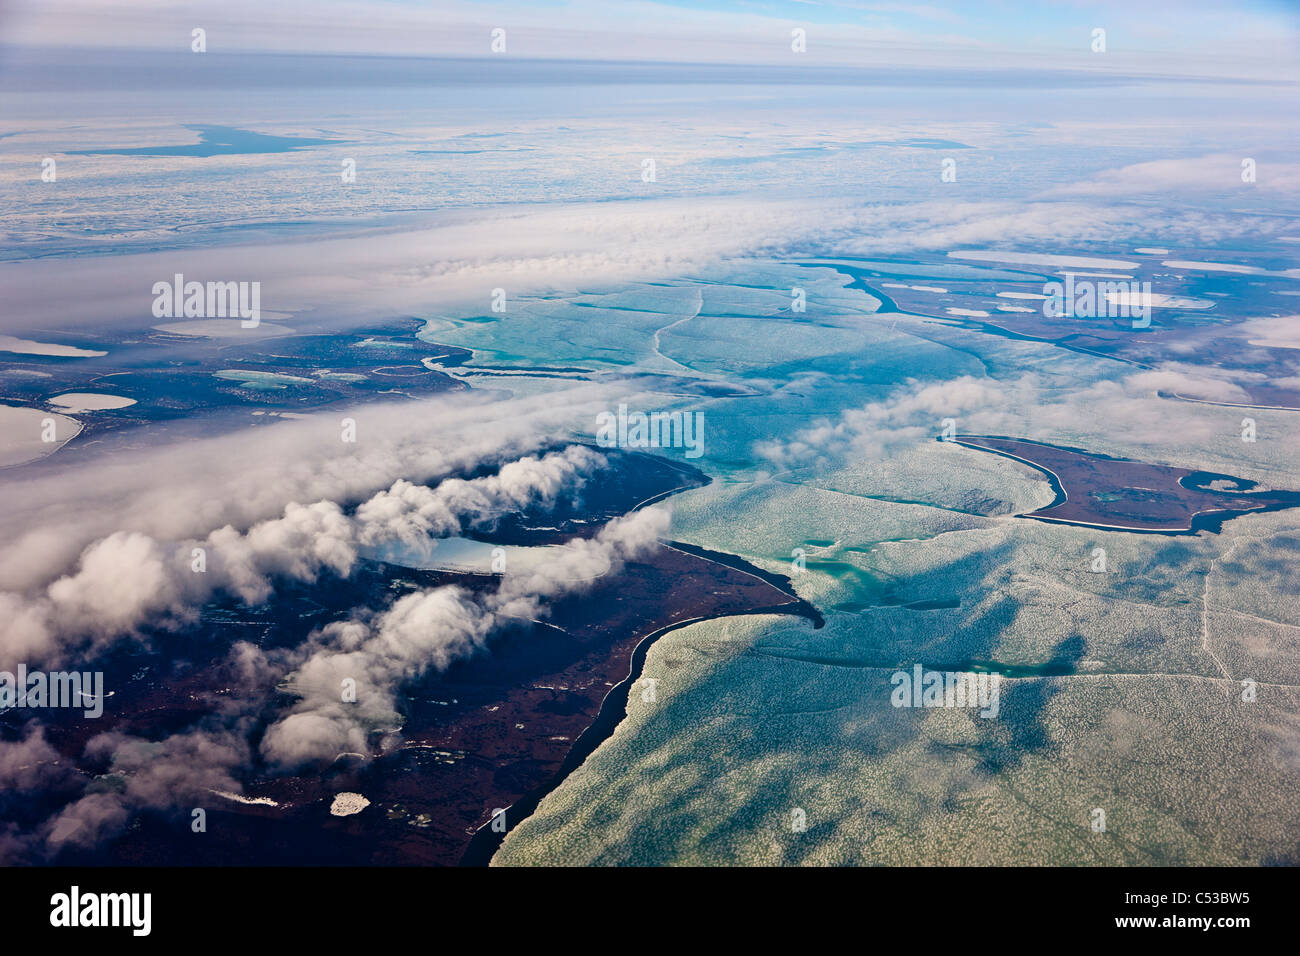 Aerial view of the North Slope Coastal Plain, Arctic Alaska, Summer - Stock Image